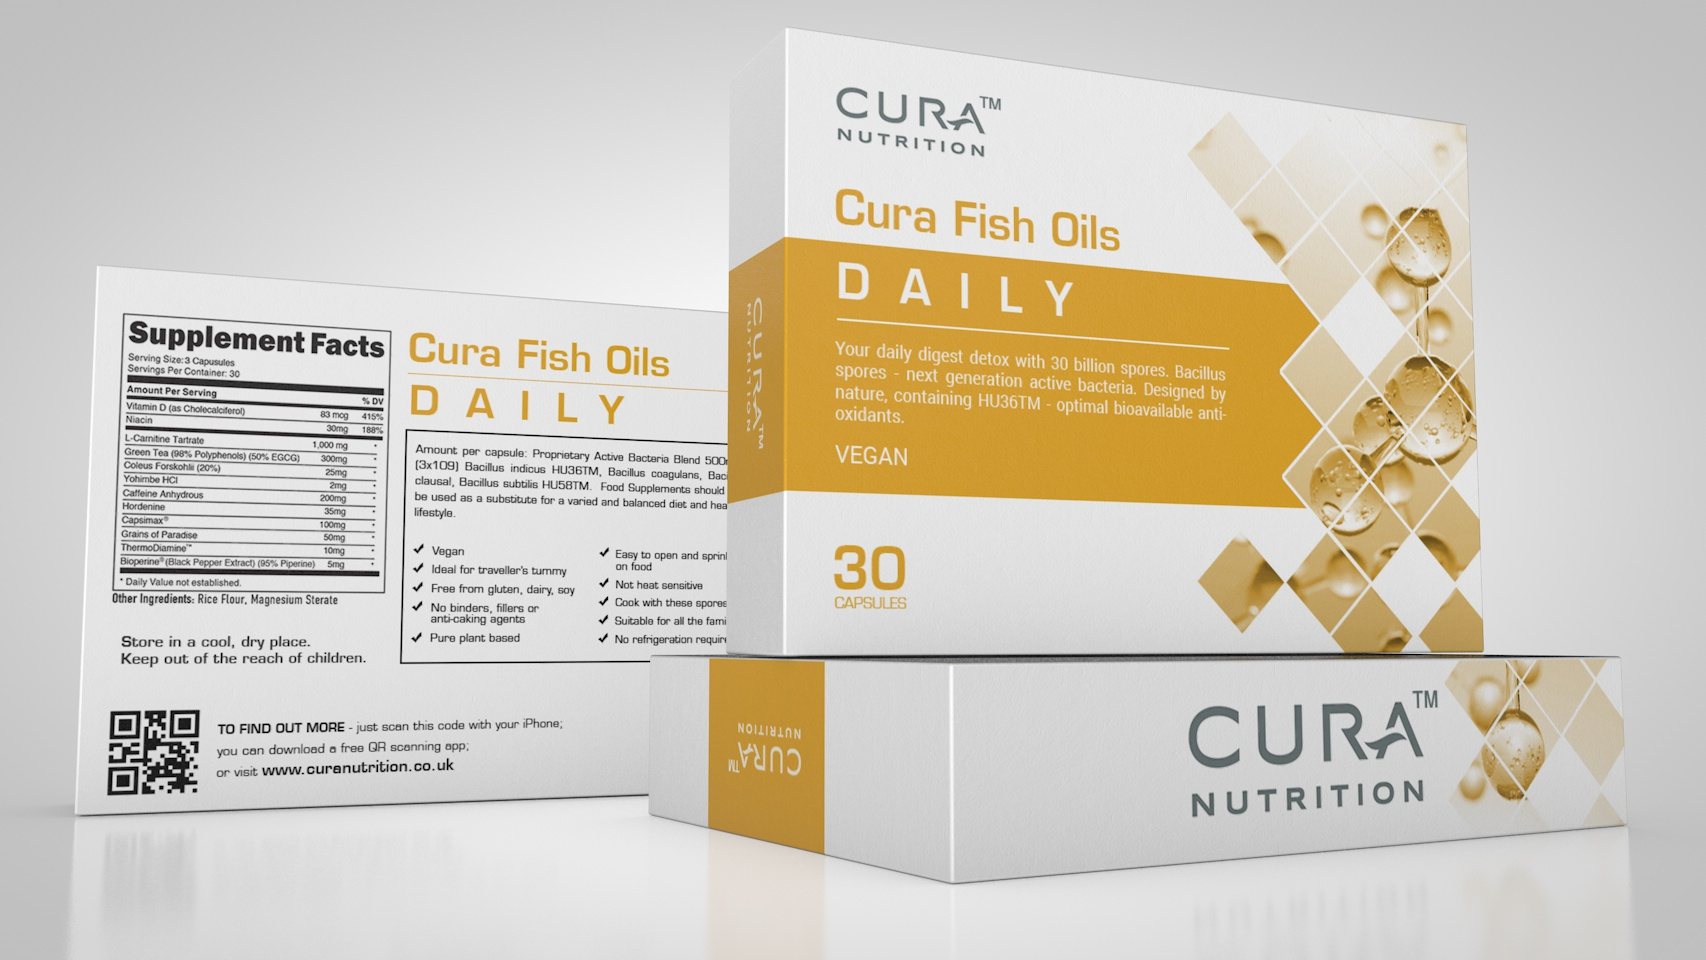 Cura Fish Oils